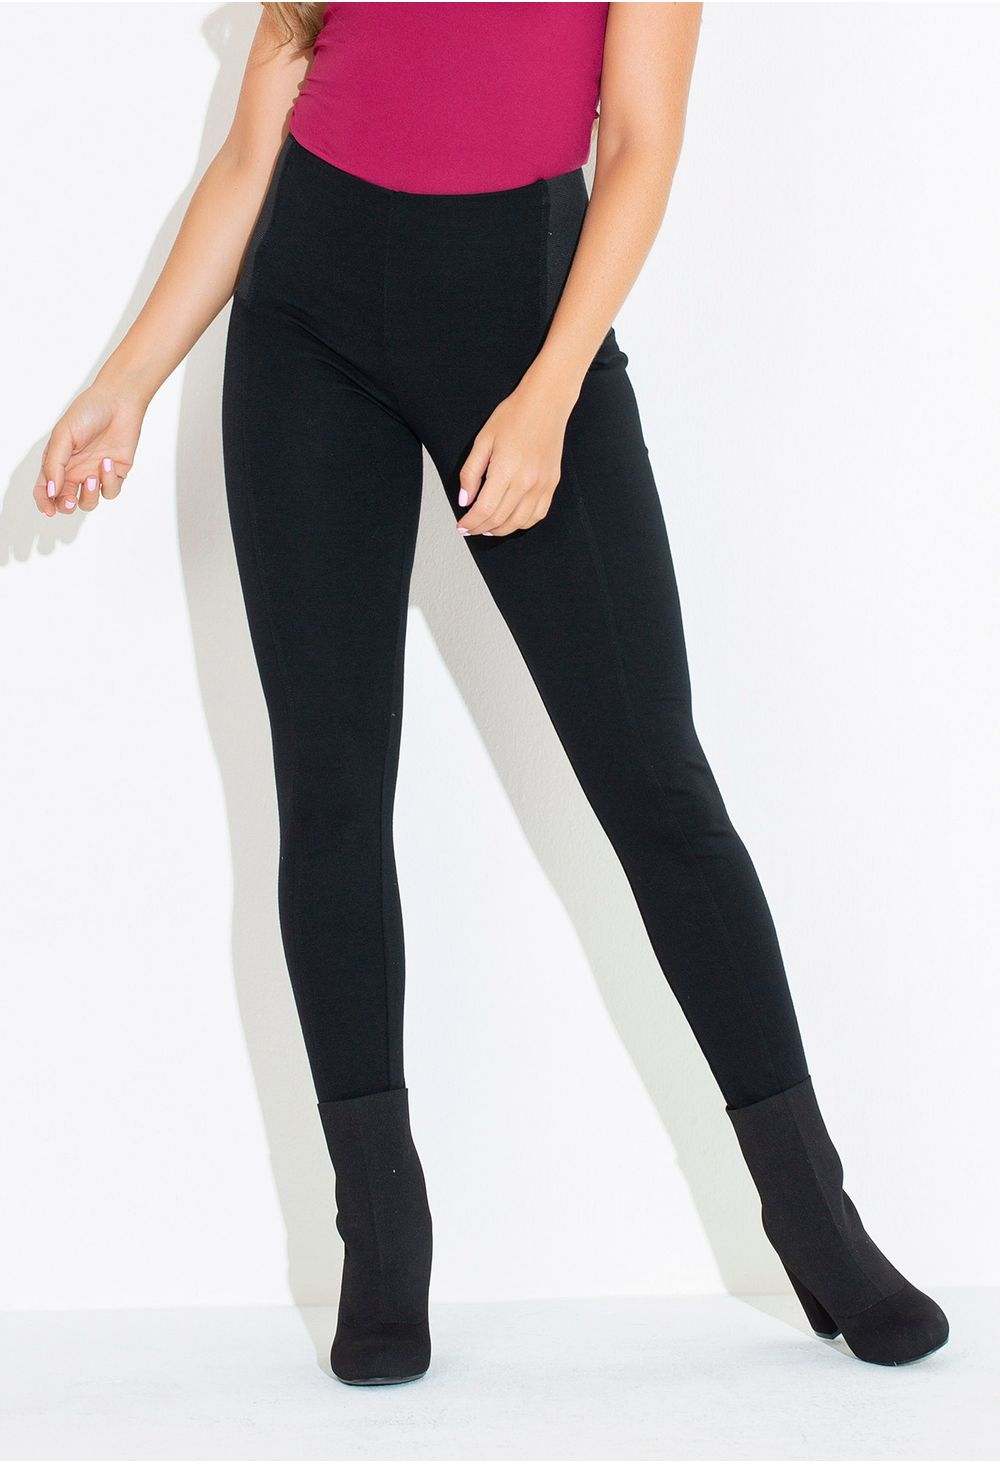 Leggings Tiro Alto Con Resorte Lateral Negro E251434 - ELA 793d312d8396